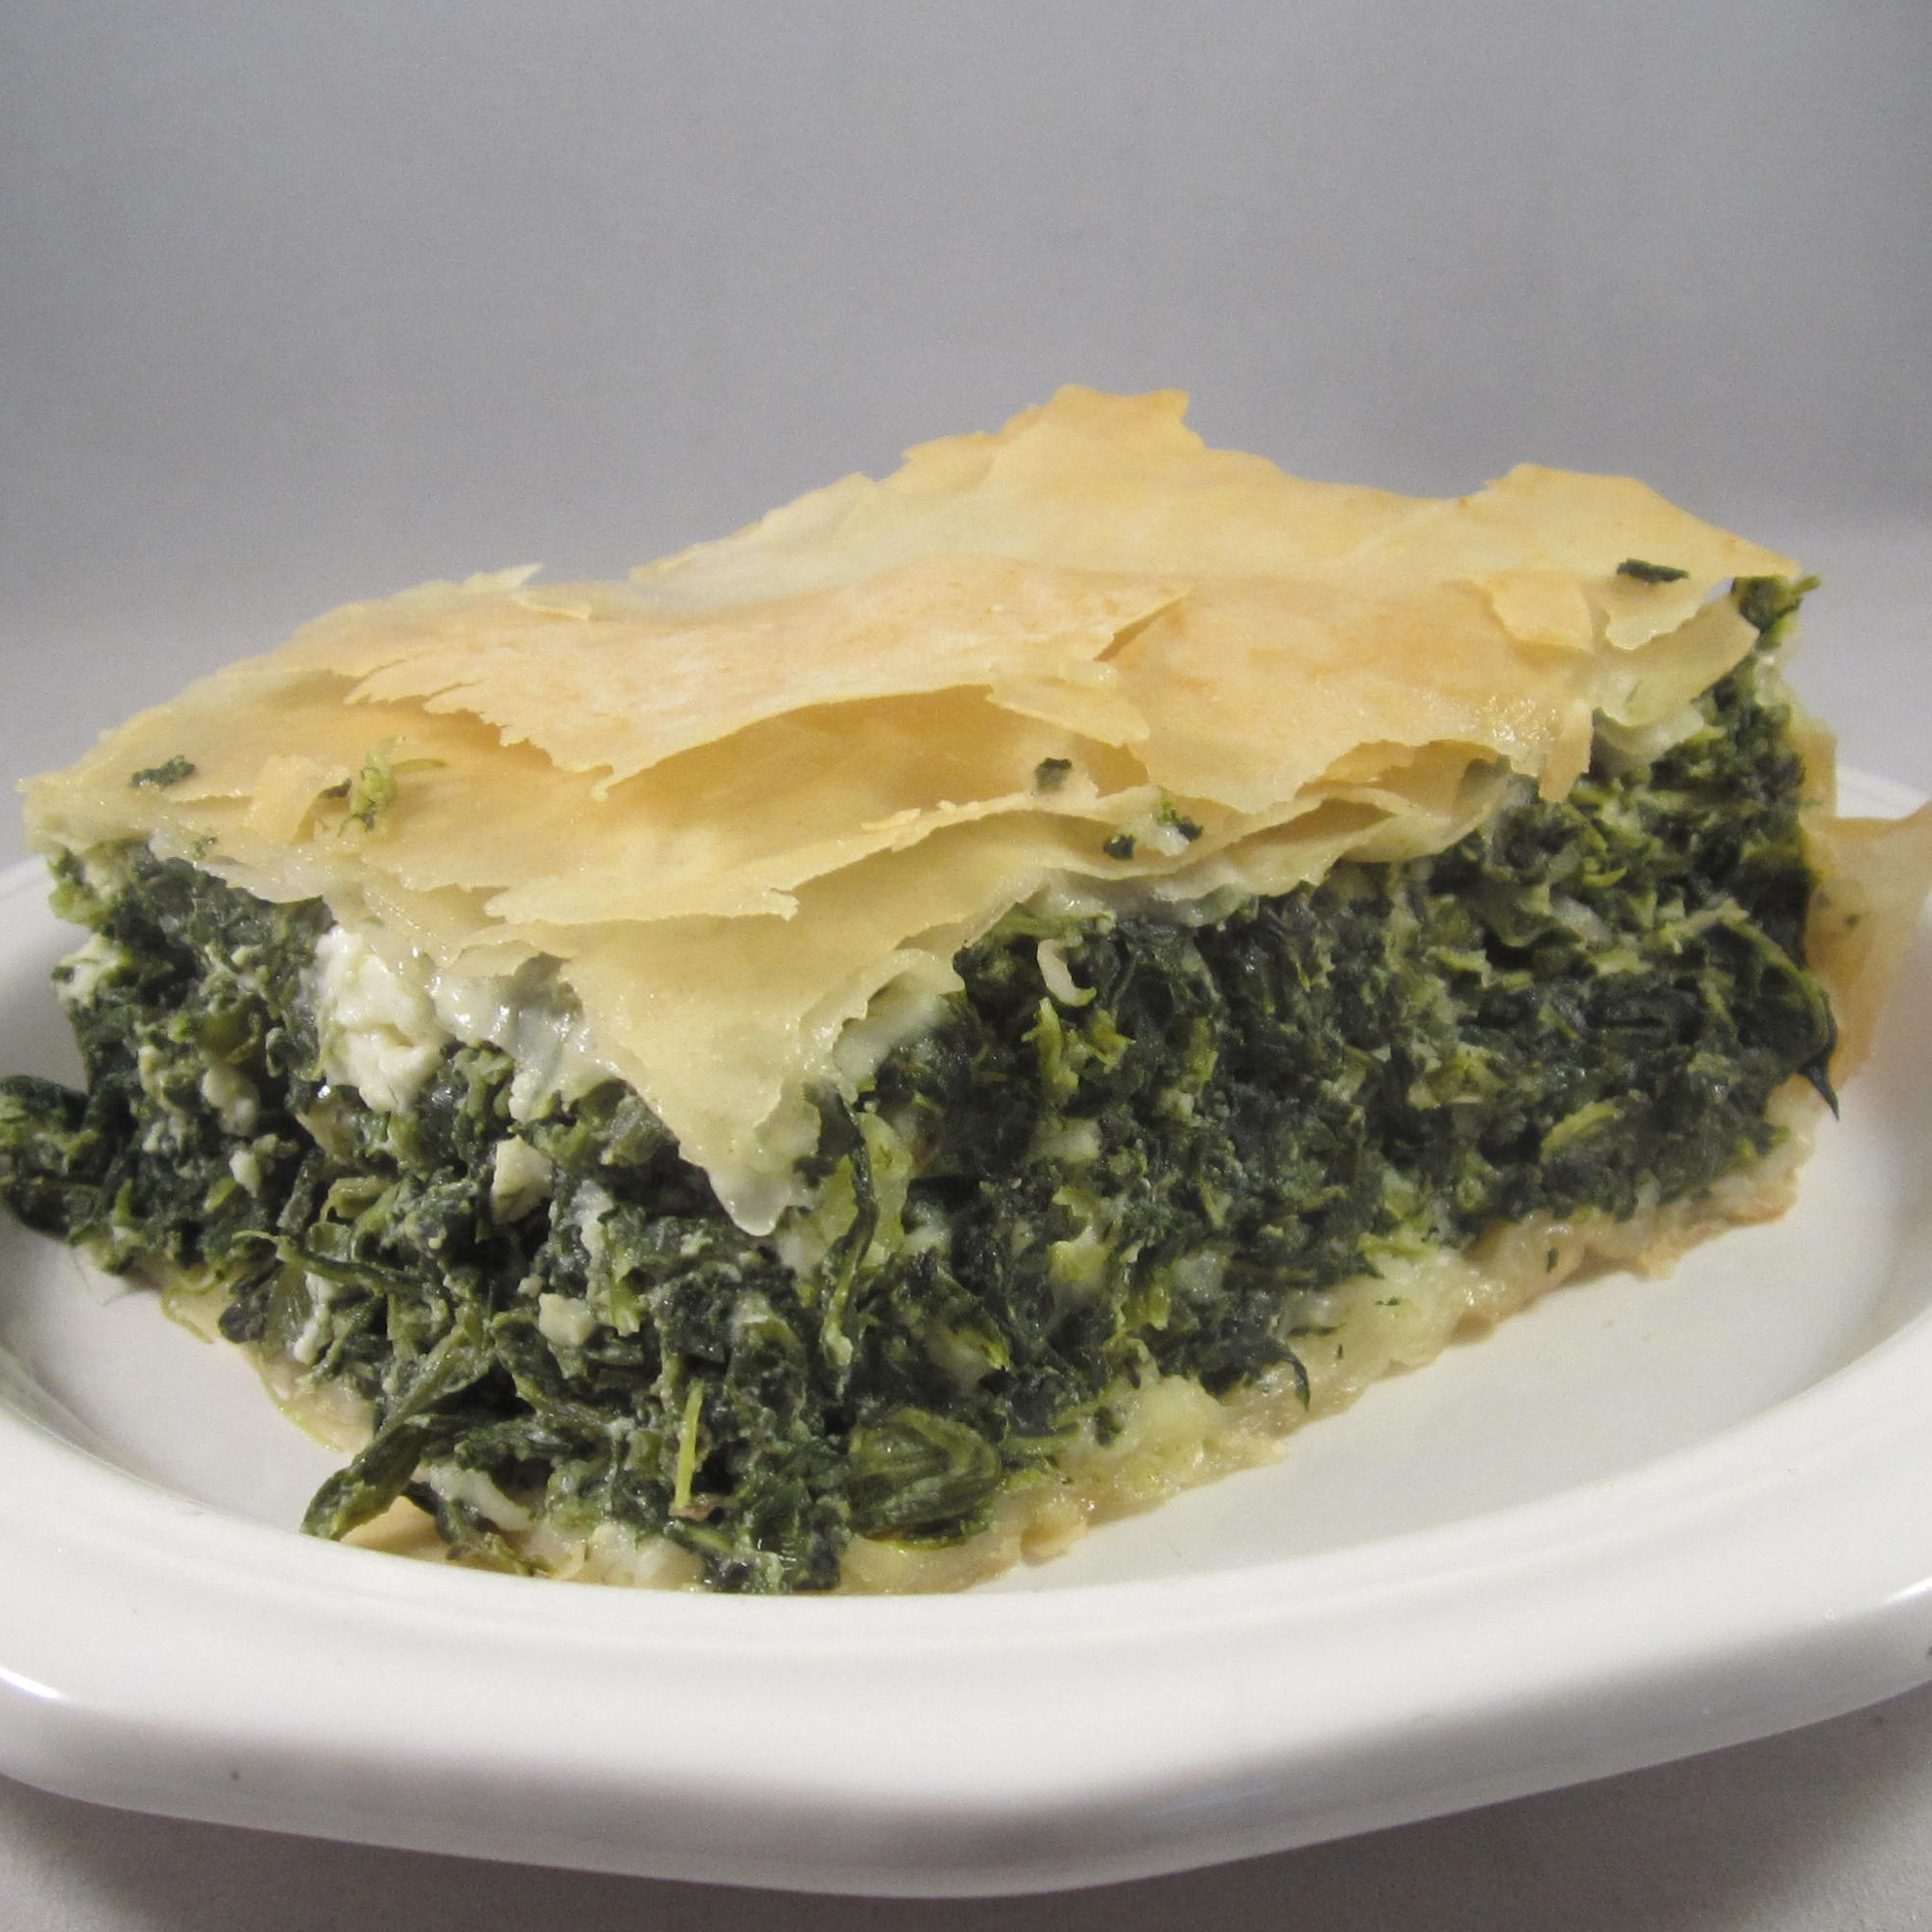 "This Greek spinach pie with a rich cheese and spinach filling and a phyllo crust bakes up beautifully golden brown. ""Old World recipe and tradition,"" says Sandy Parks. ""Looks complicated, but not -- and best tasting one I've had."""